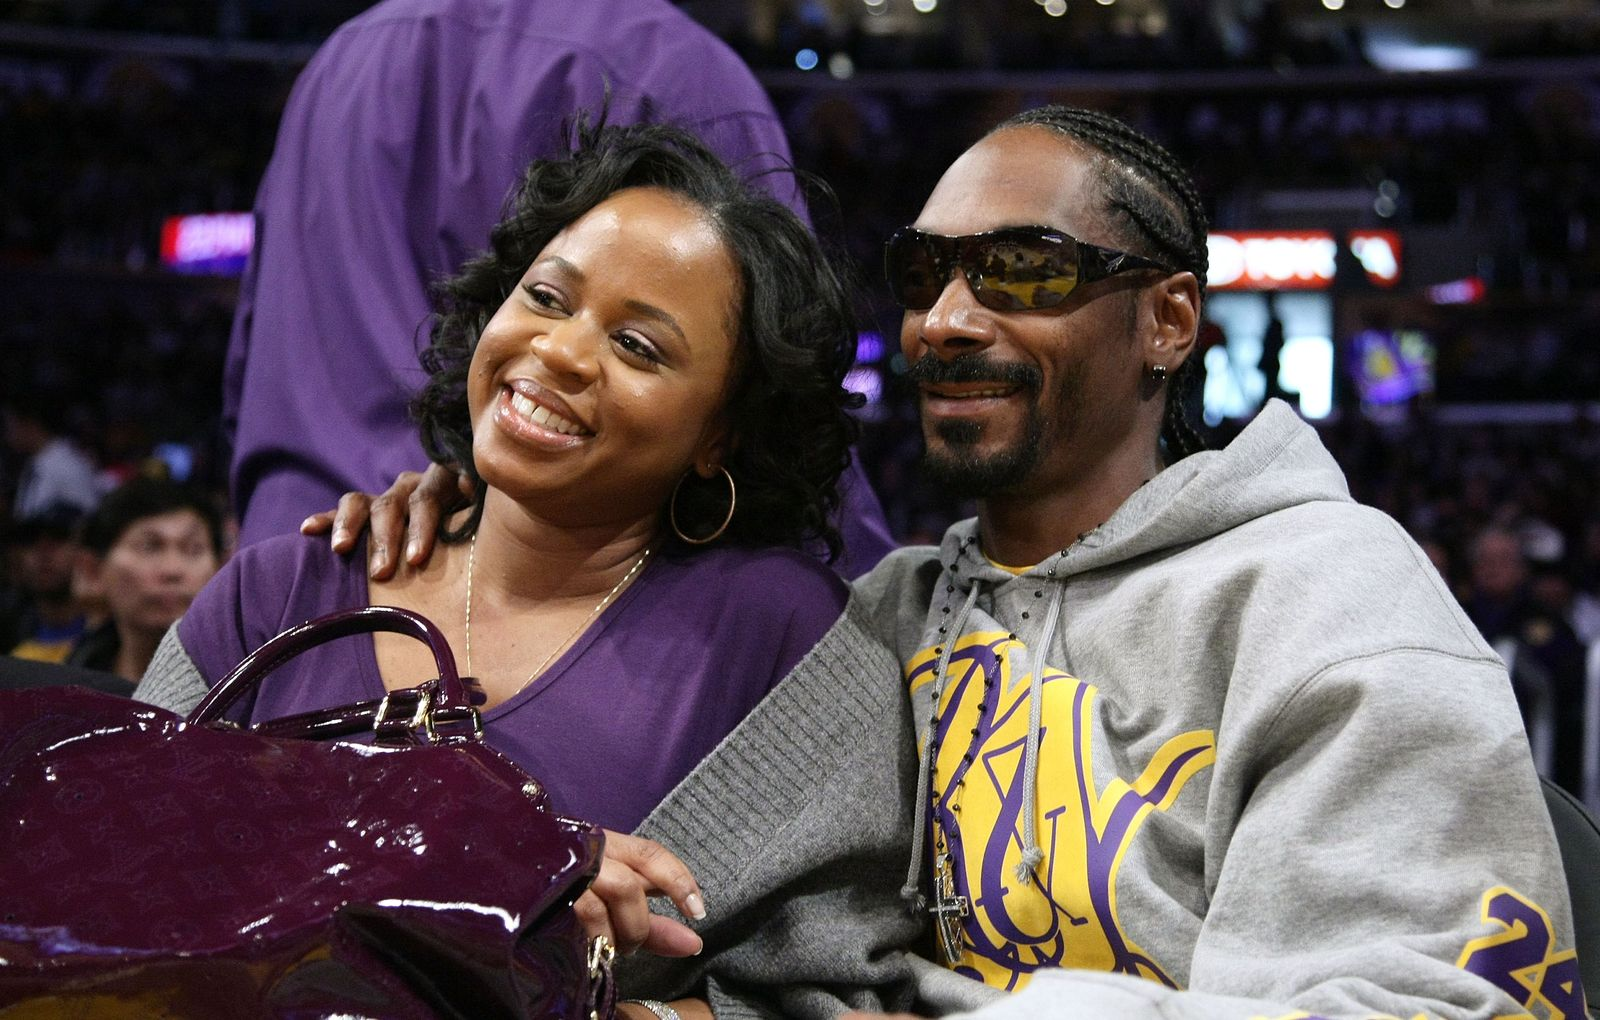 Snoop Dogg and Shante Broadus/Photo:Getty Images